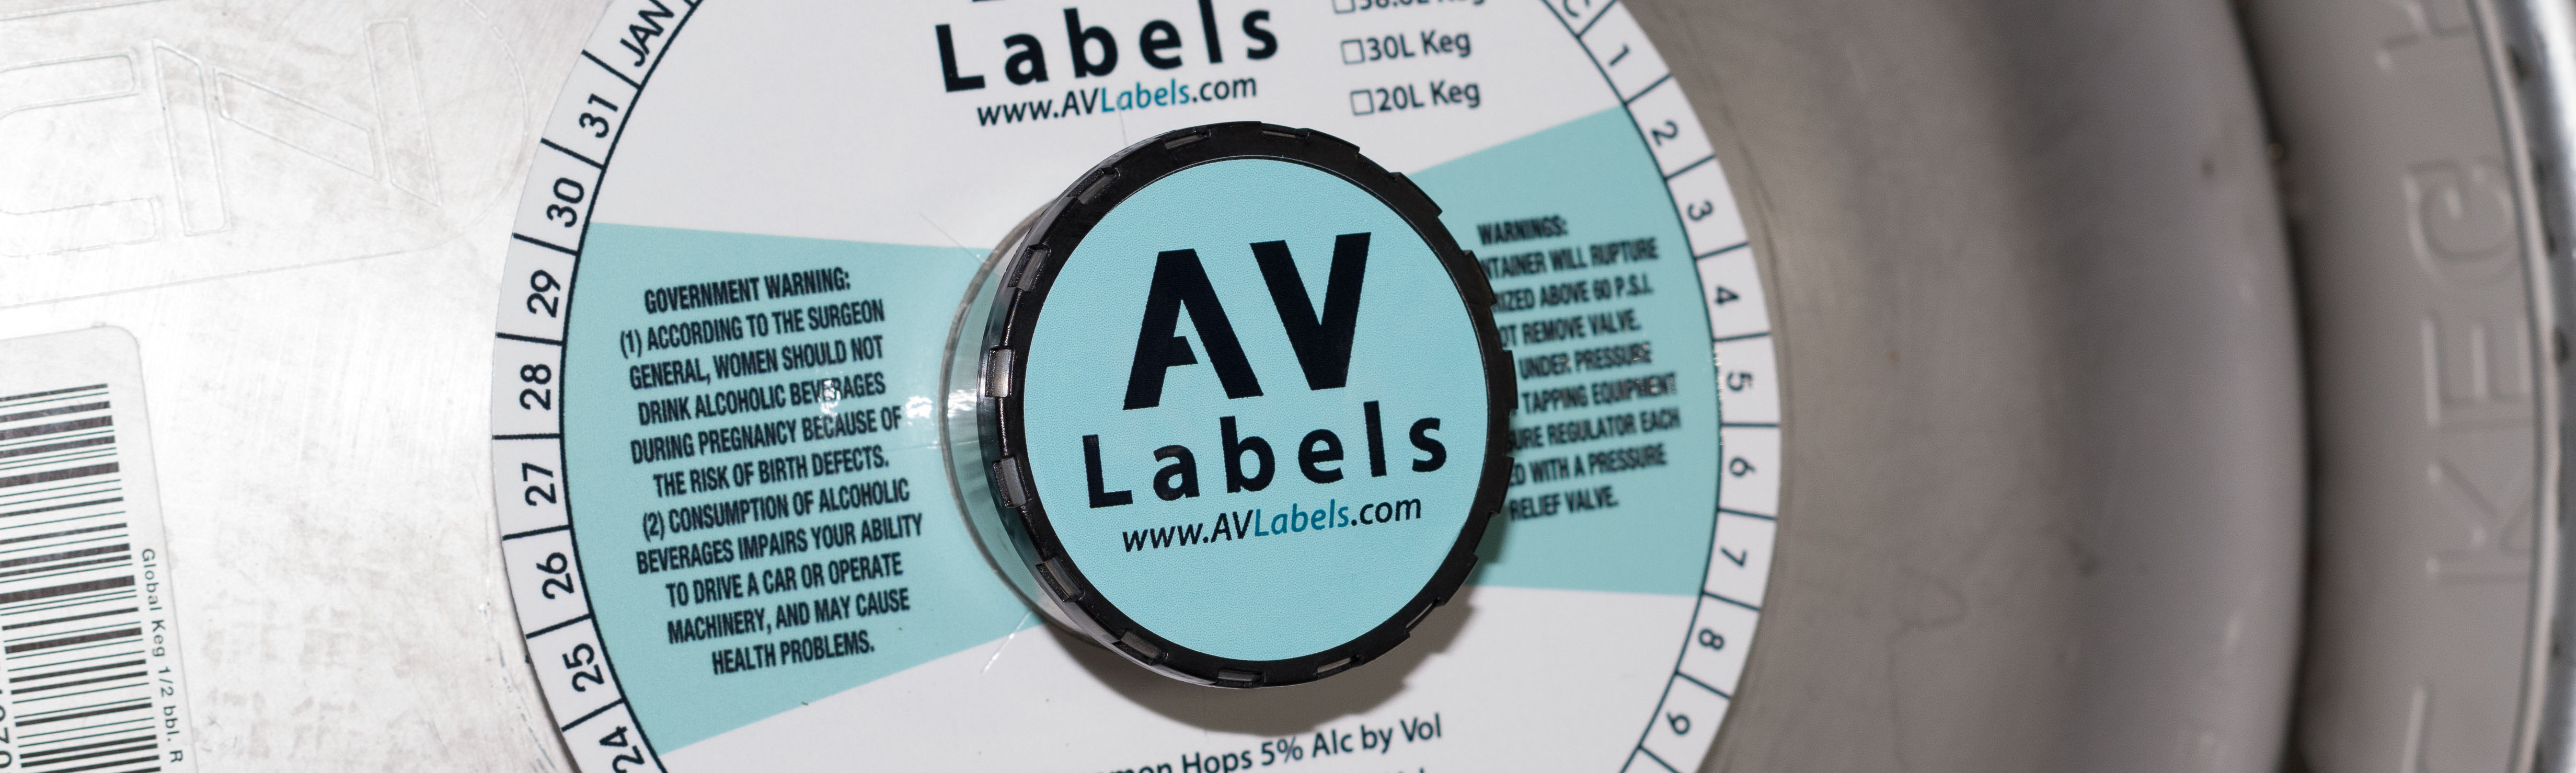 picture of a keg with keg collar, keg label and other branding